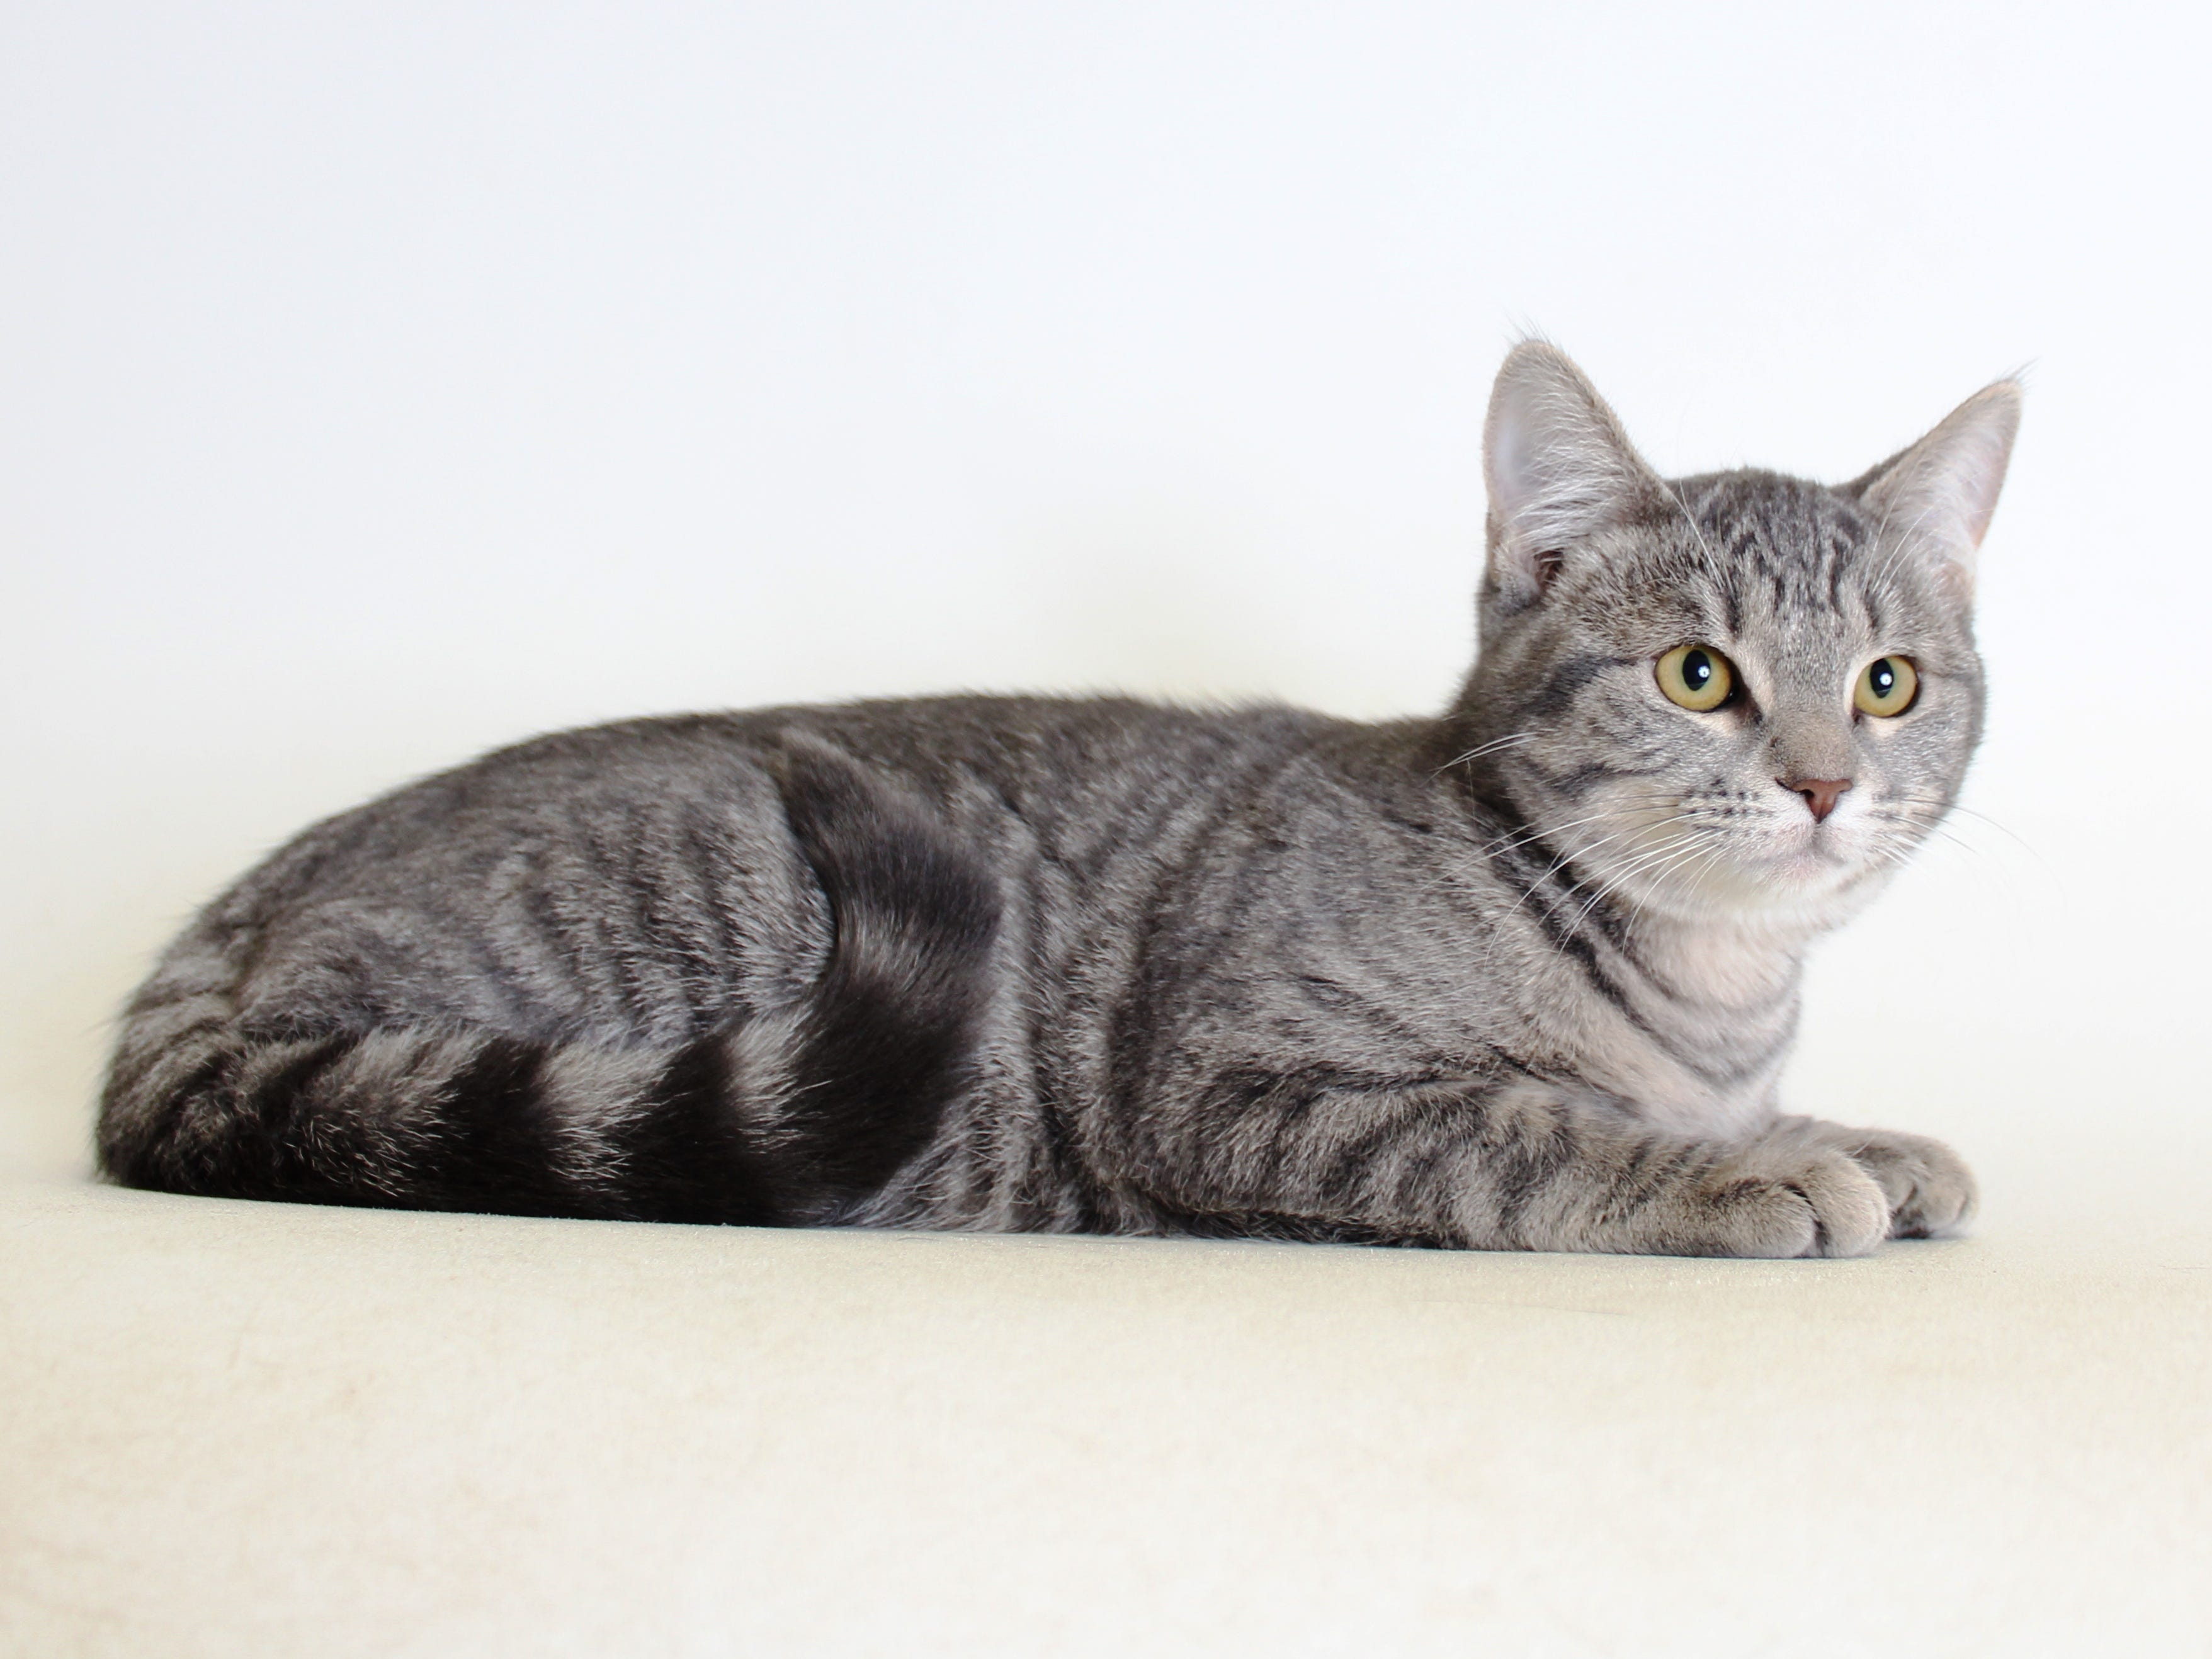 Squash is a 4-month-old, domestic-shorthair tabby kitten. She is loving, social and sweet, and wants to be a lap cat. All feline and canine adoptions include spaying or neutering, vaccinations and a microchip. Visit Haven Humane Society, 7449 Eastside Road, Redding. Call 241-1653. Go to www.havenhumane.net.